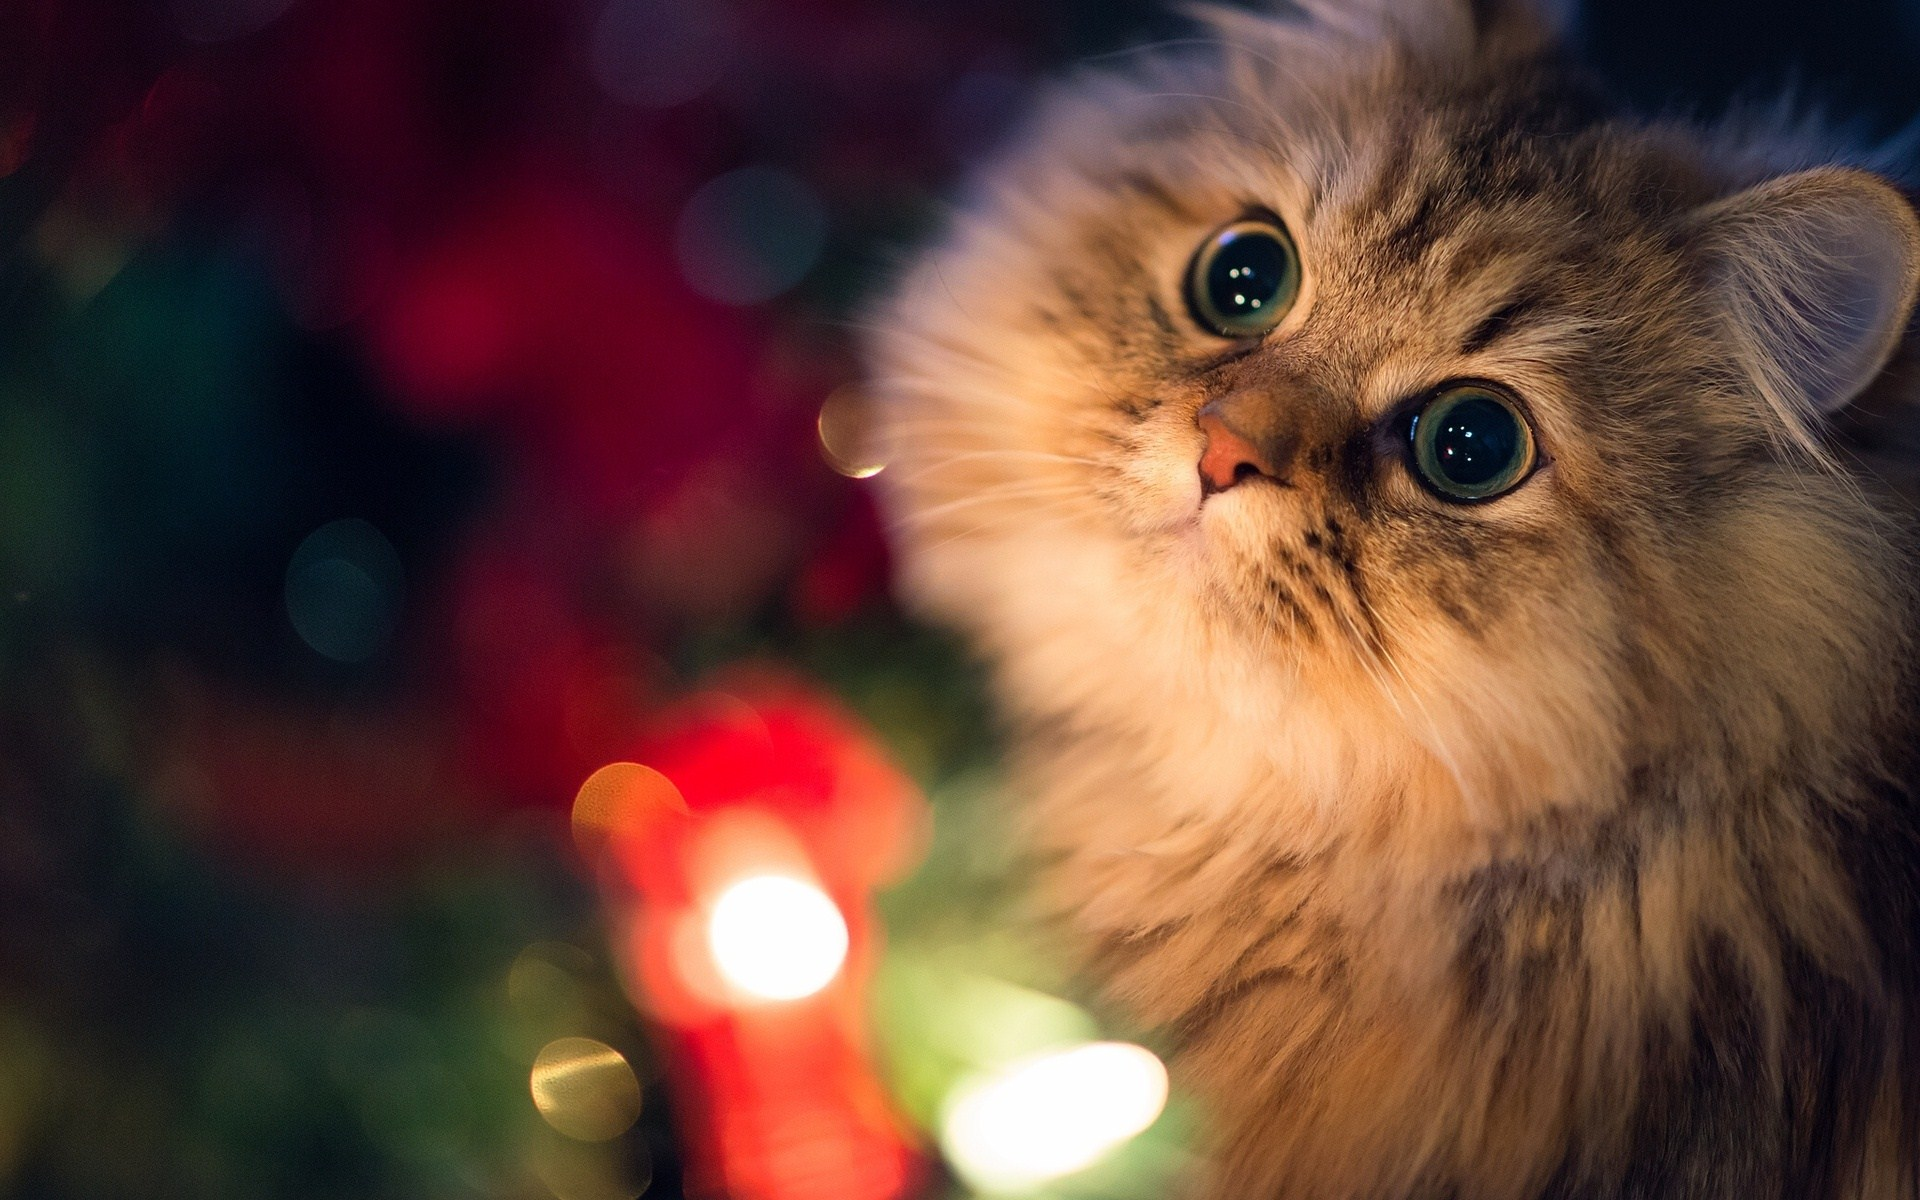 Awesome Cat Close Up Wallpaper